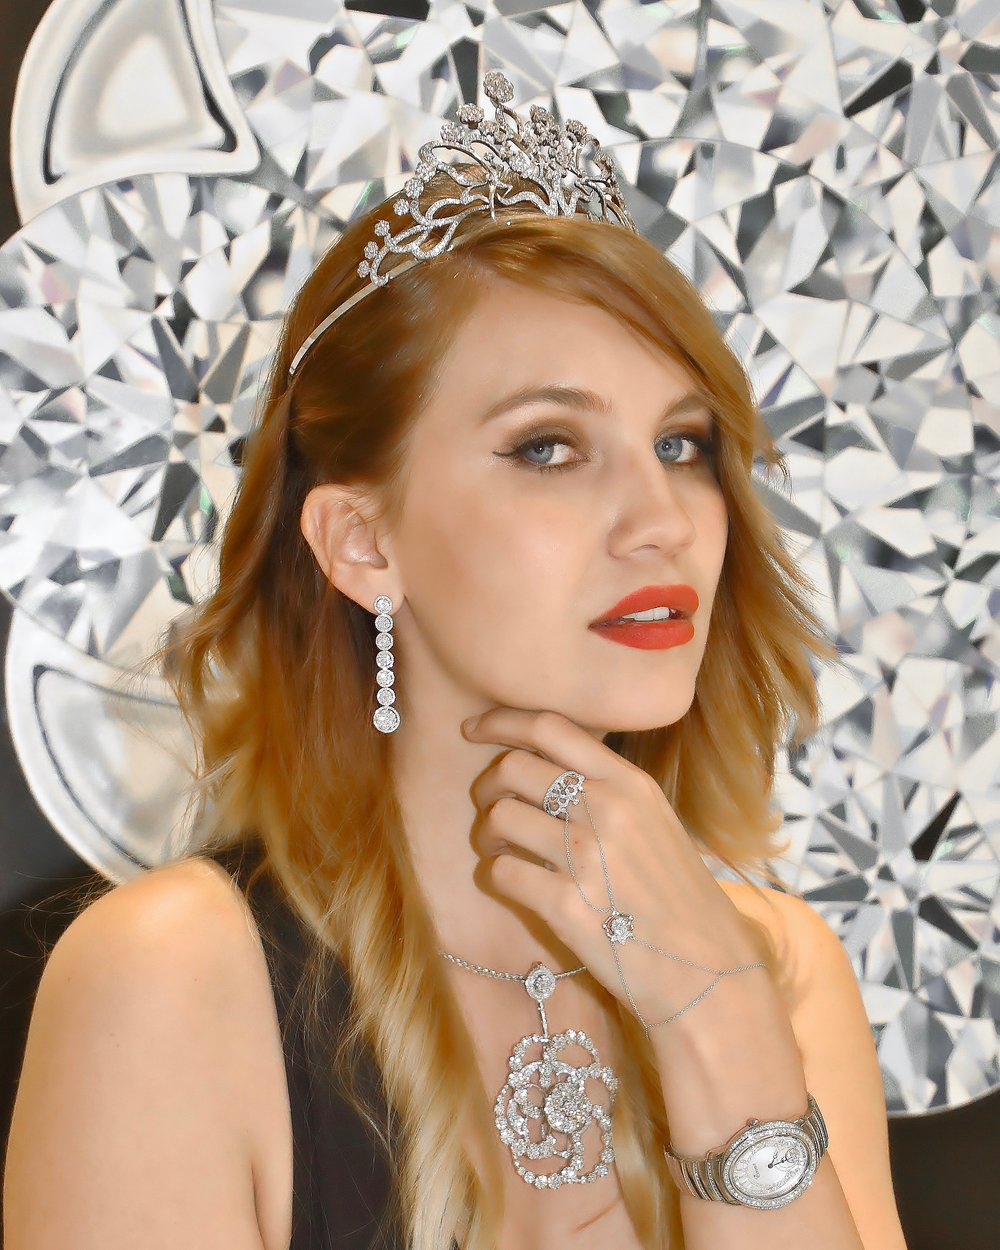 Miss Switzerland, Kerstin Cook radiates in the 'Inner Brilliance' spinning diamonds jewelry from 'Coronet By Reena Ahluwalia'. VIEW THE COLLECTION. Image credit: Abdou HILALI | Baselworld